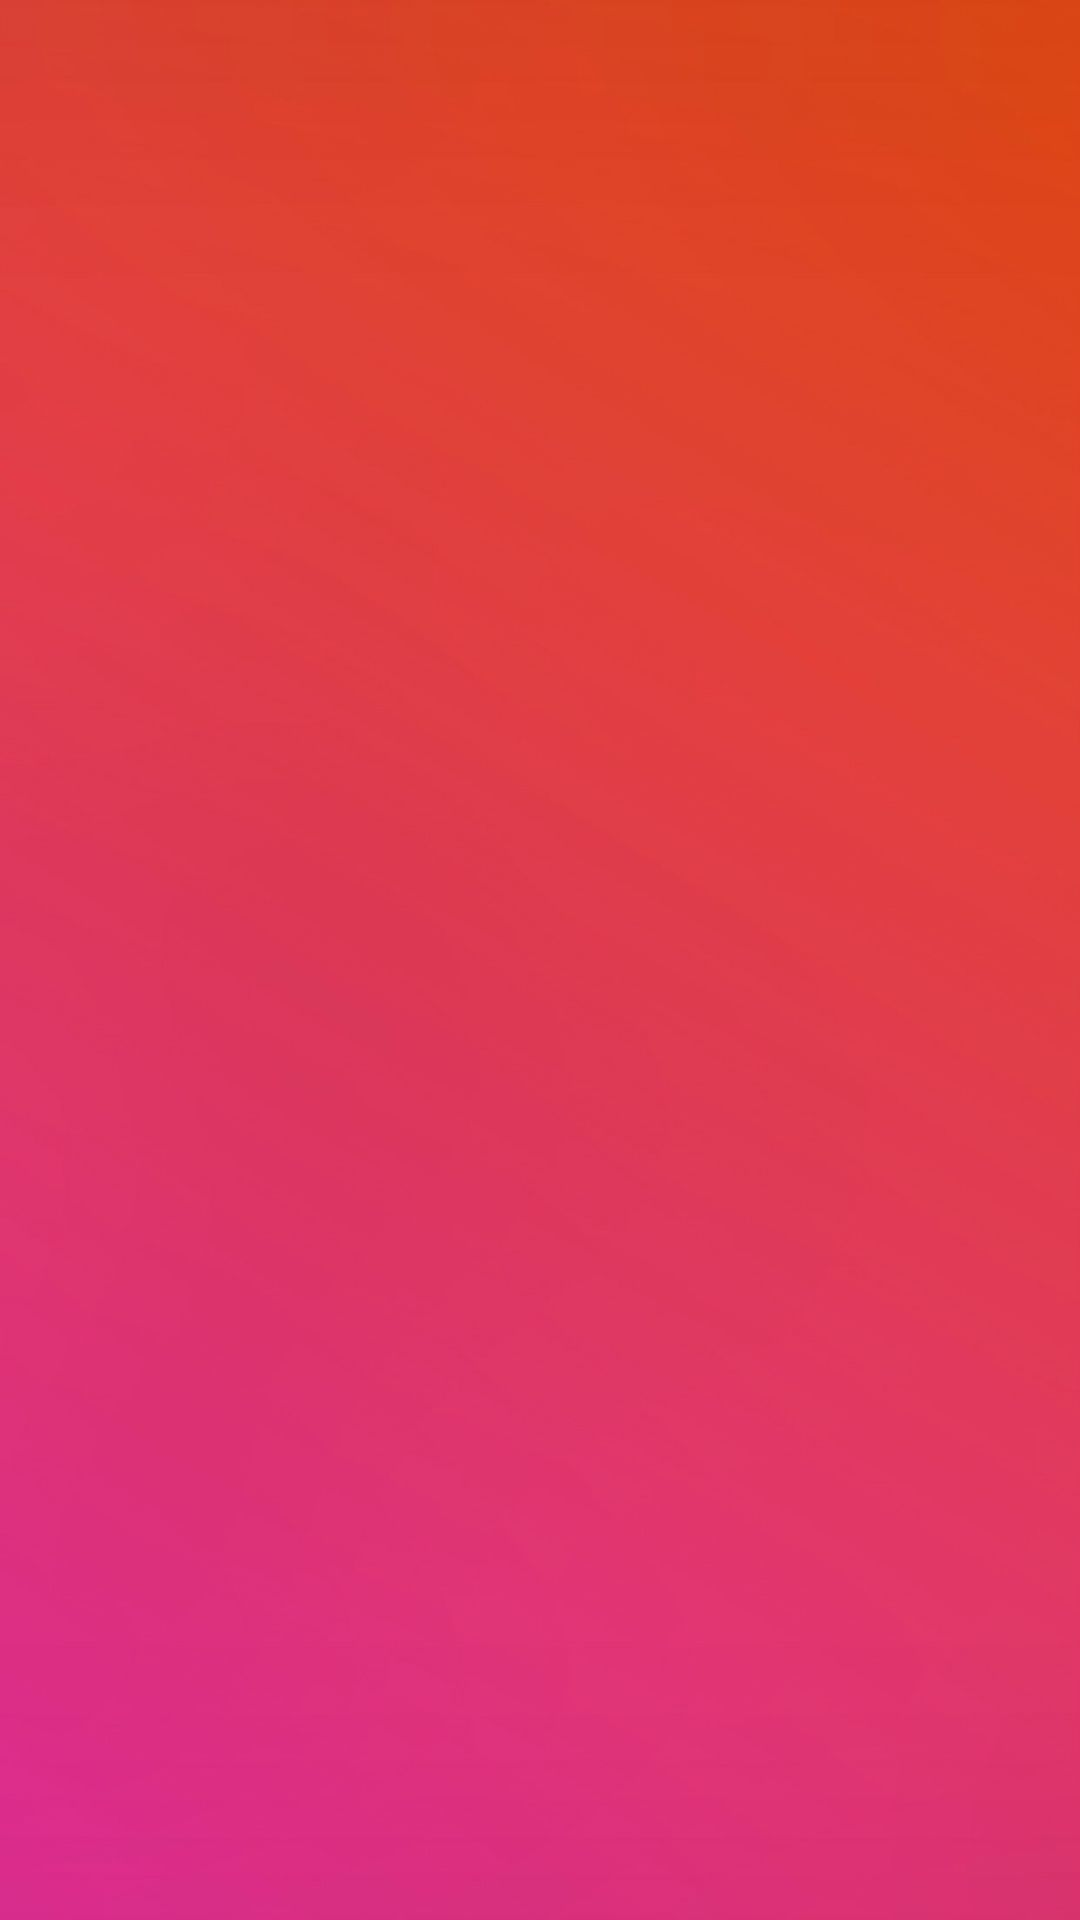 Red And Pink Bedroom: Red Orange Combination Inside Gradation Blur IPhone 6